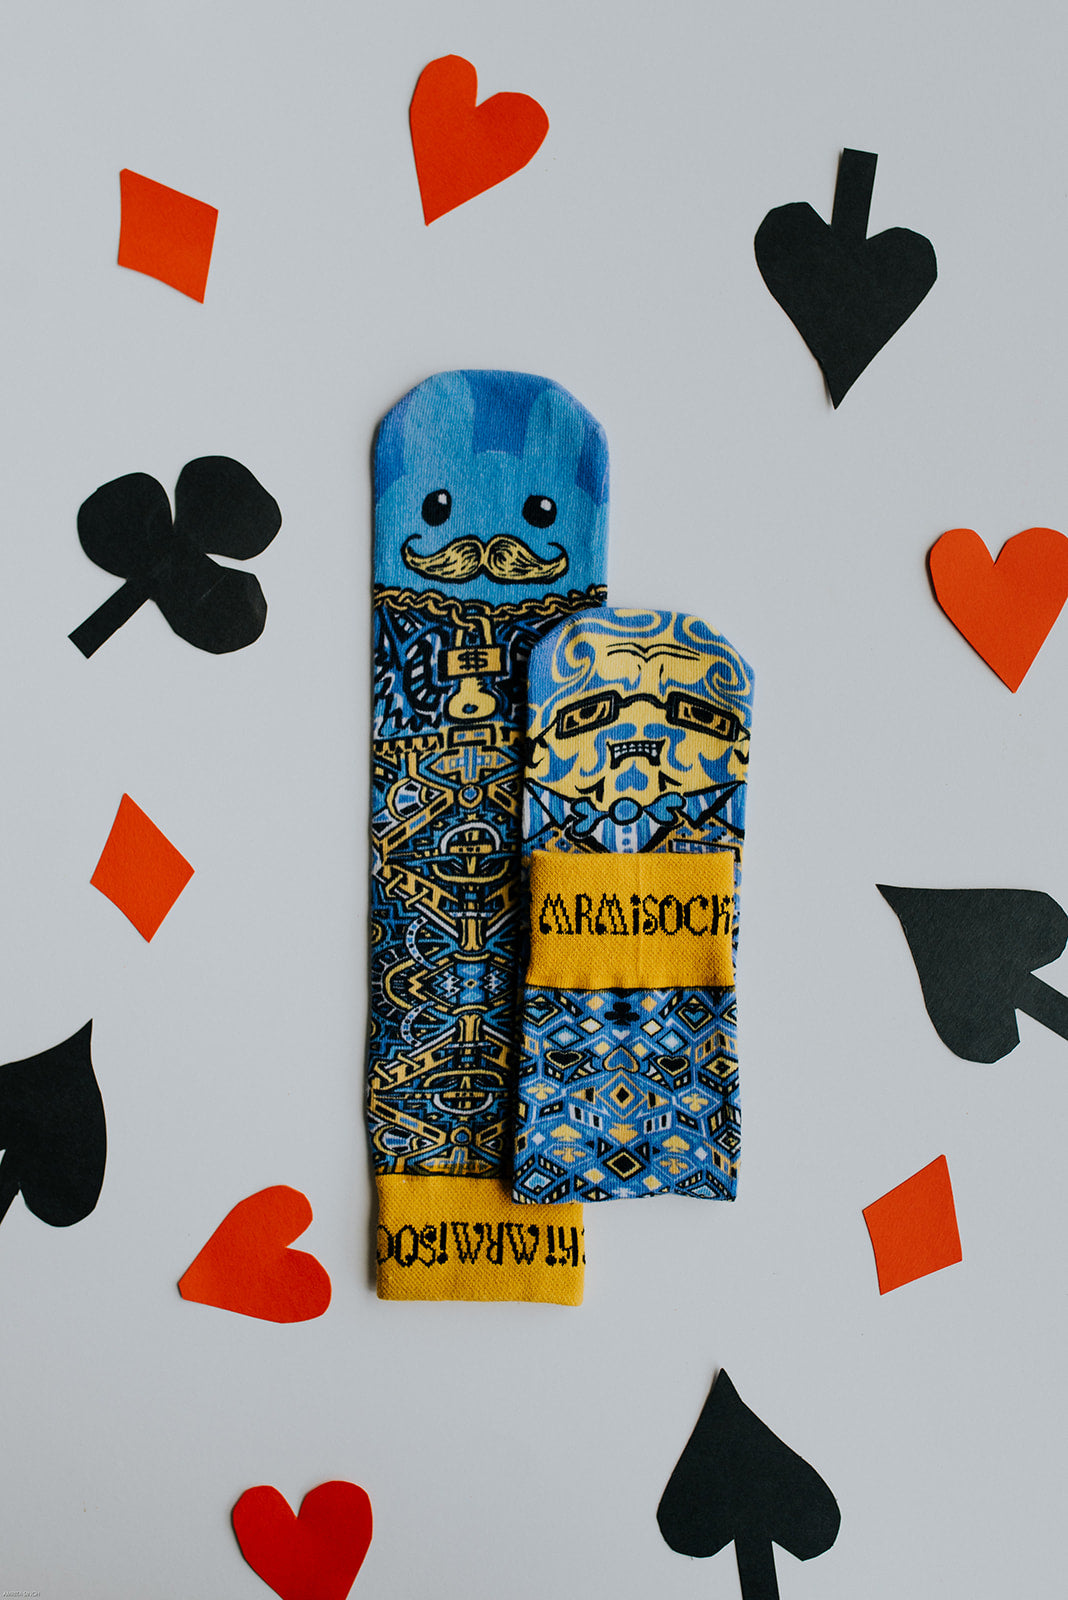 Volume 3.1 -Labbit & Chip (MrMiSocki x Kidrobot) for $ 12.00